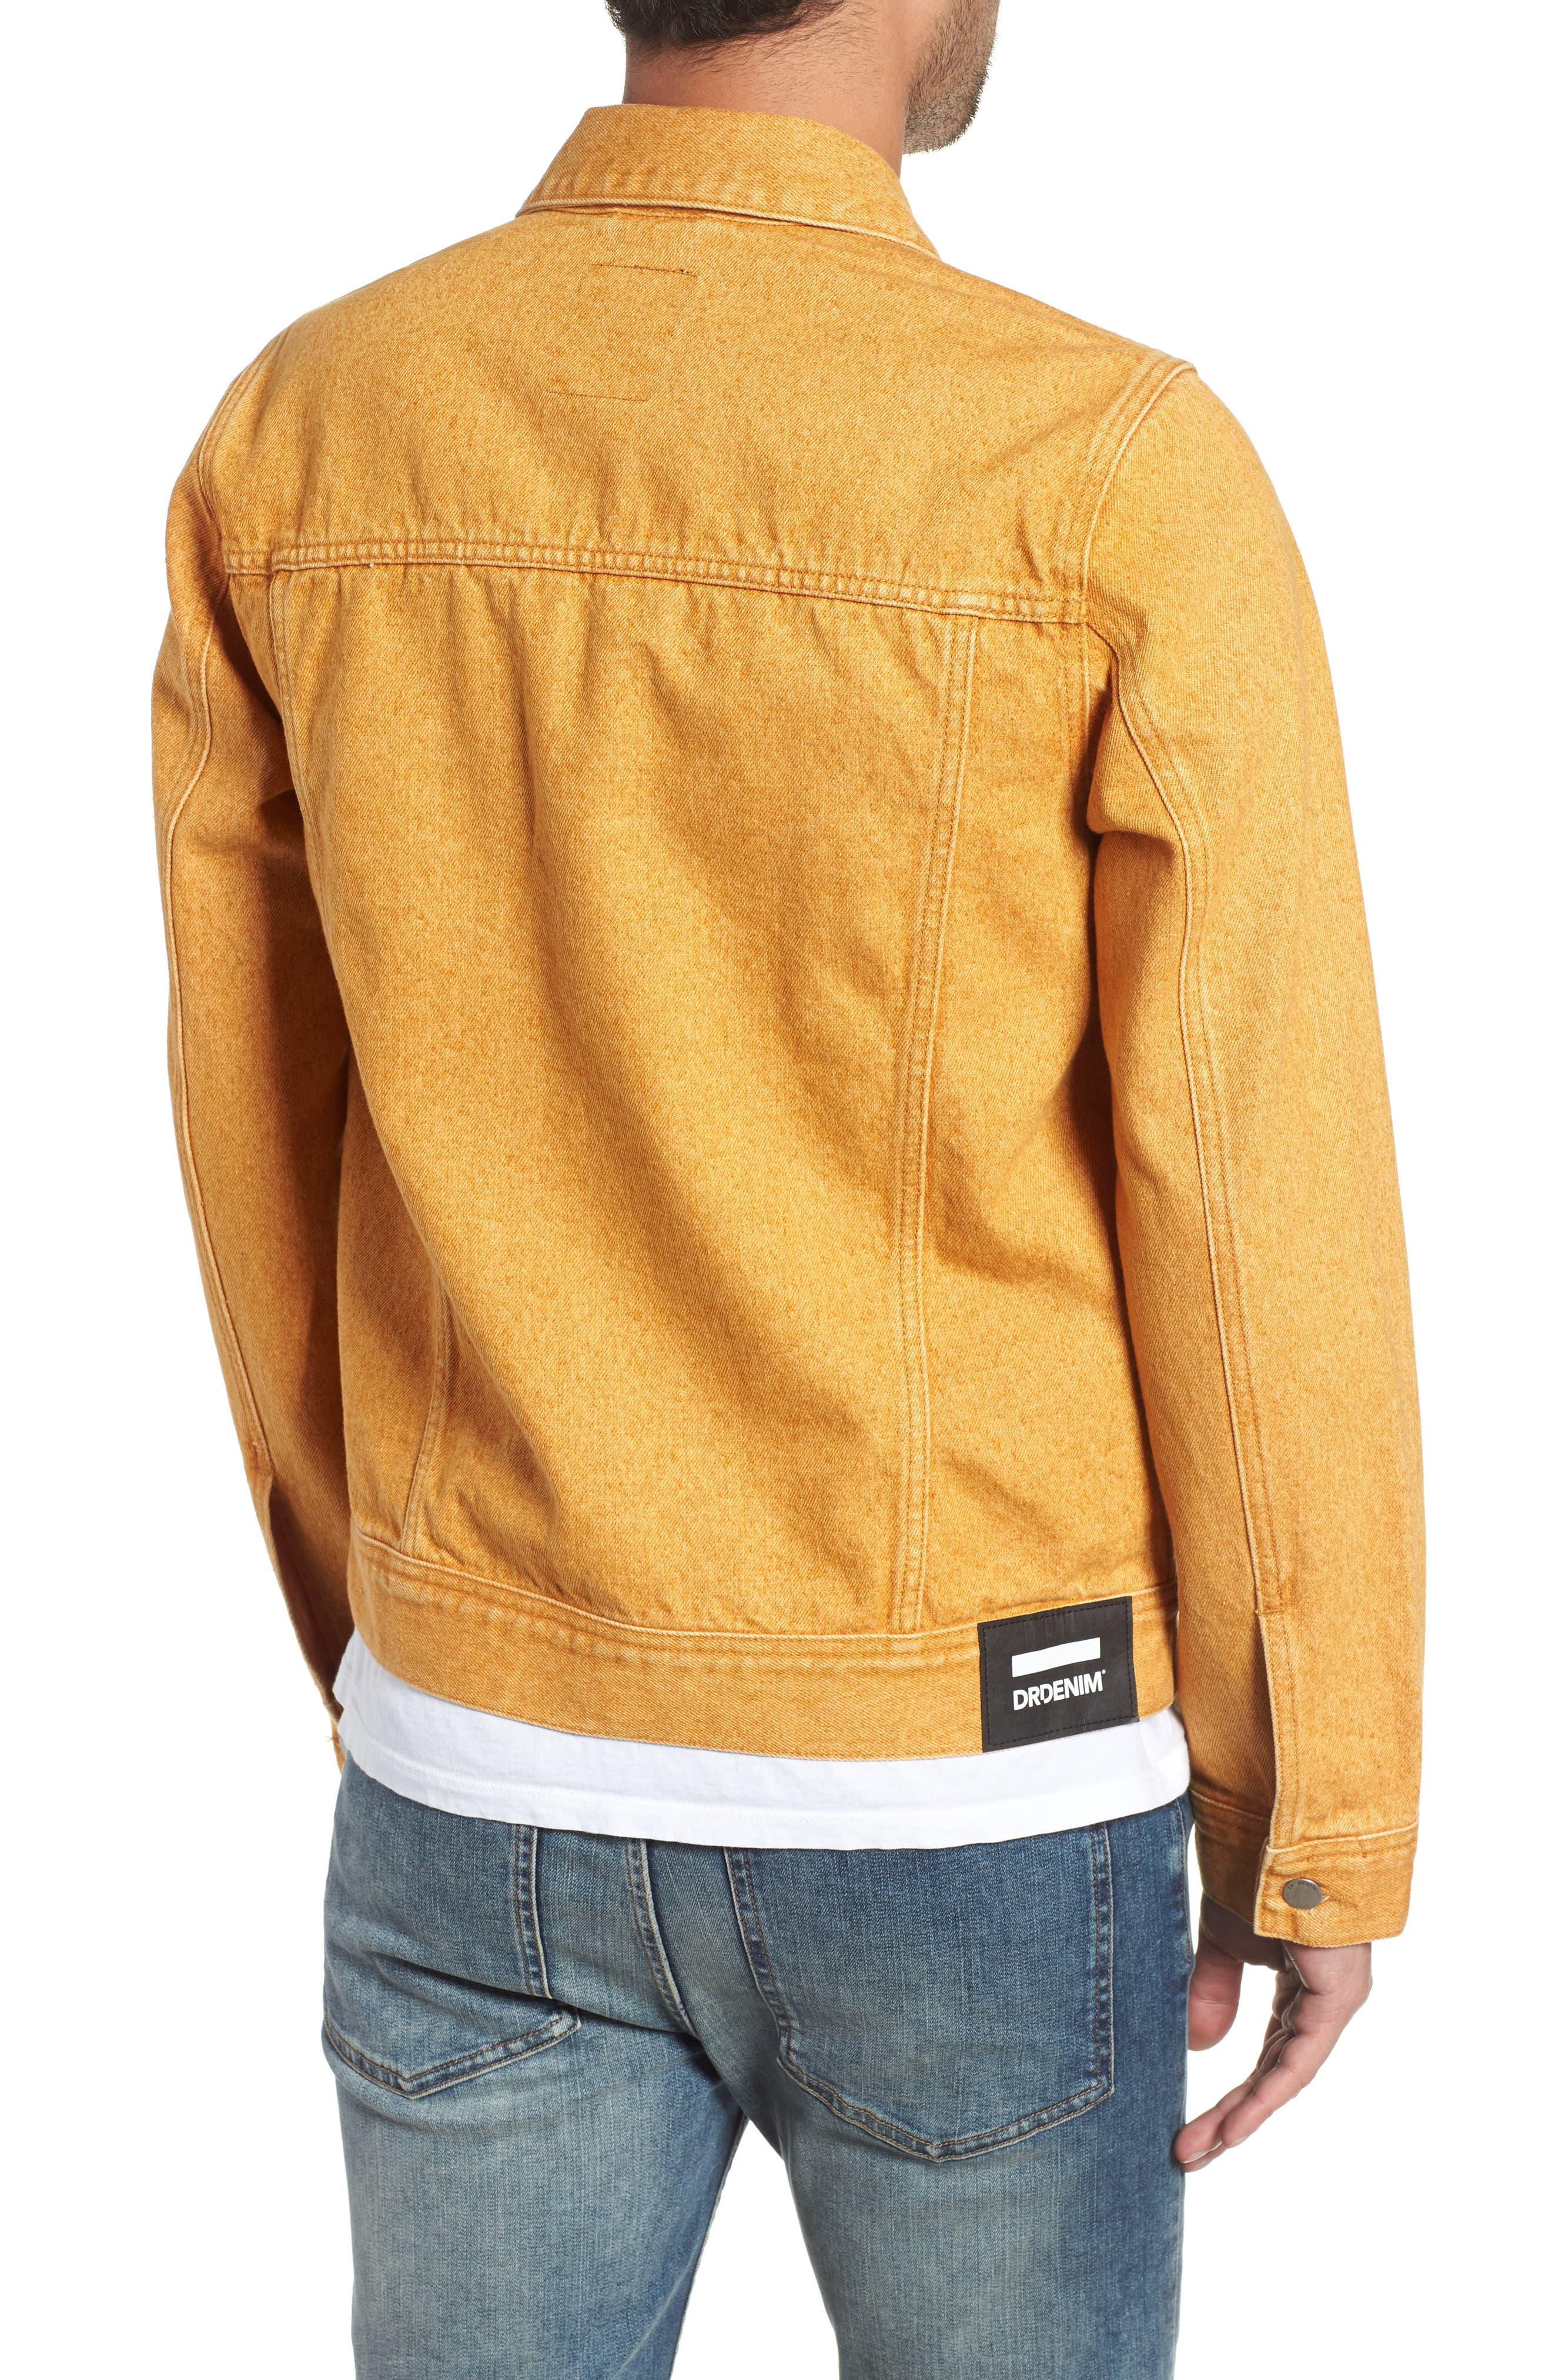 Dwight Denim Jacket,                             Alternate thumbnail 2, color,                             DUSTY GOLD